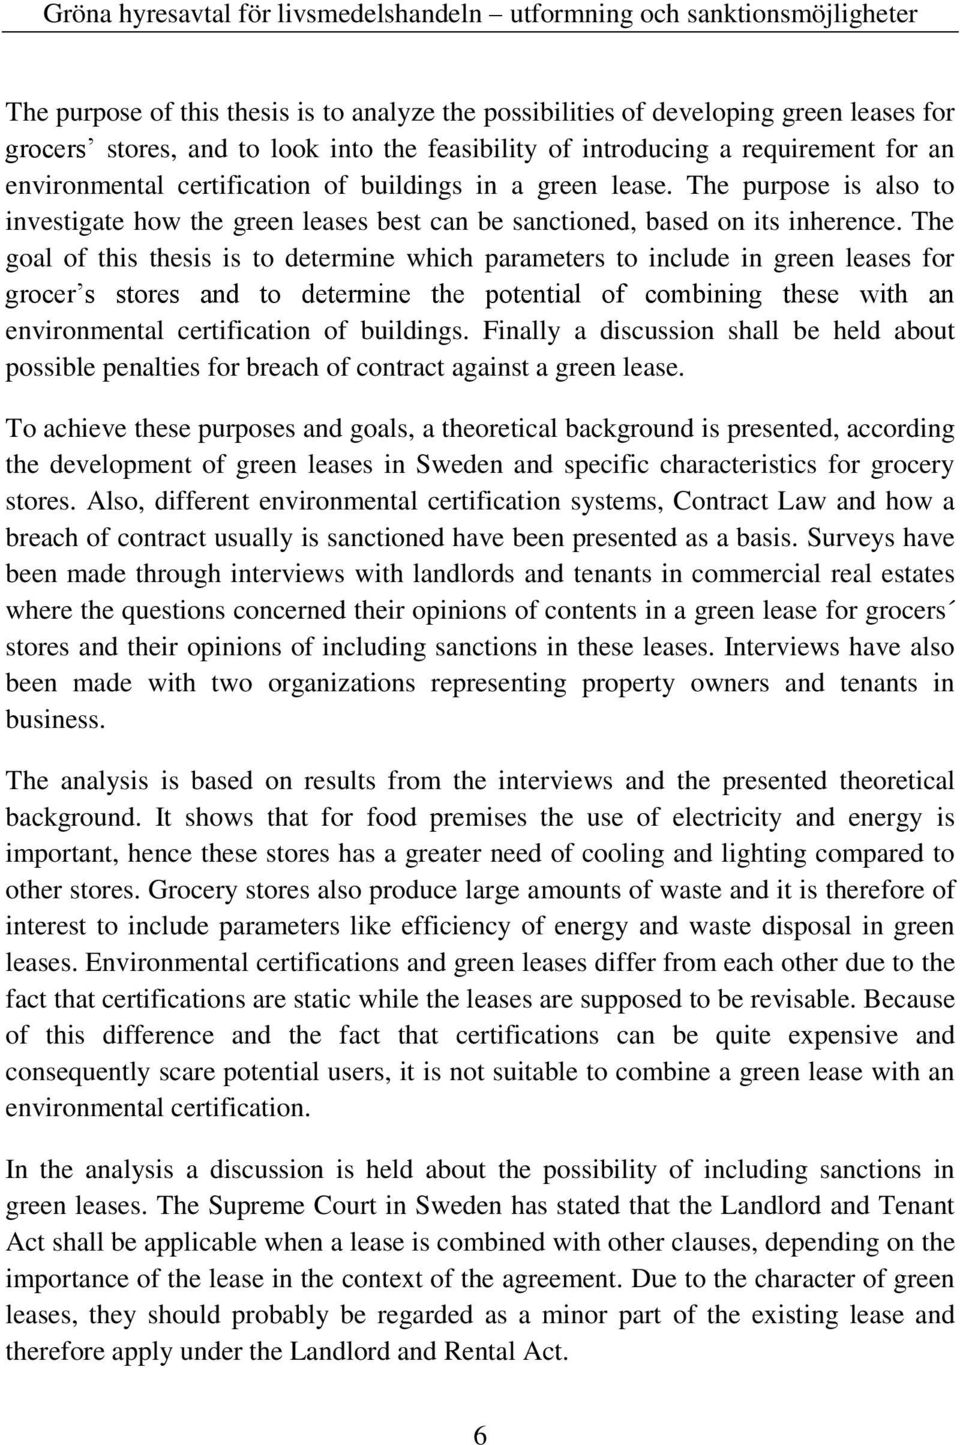 The goal of this thesis is to determine which parameters to include in green leases for grocer s stores and to determine the potential of combining these with an environmental certification of